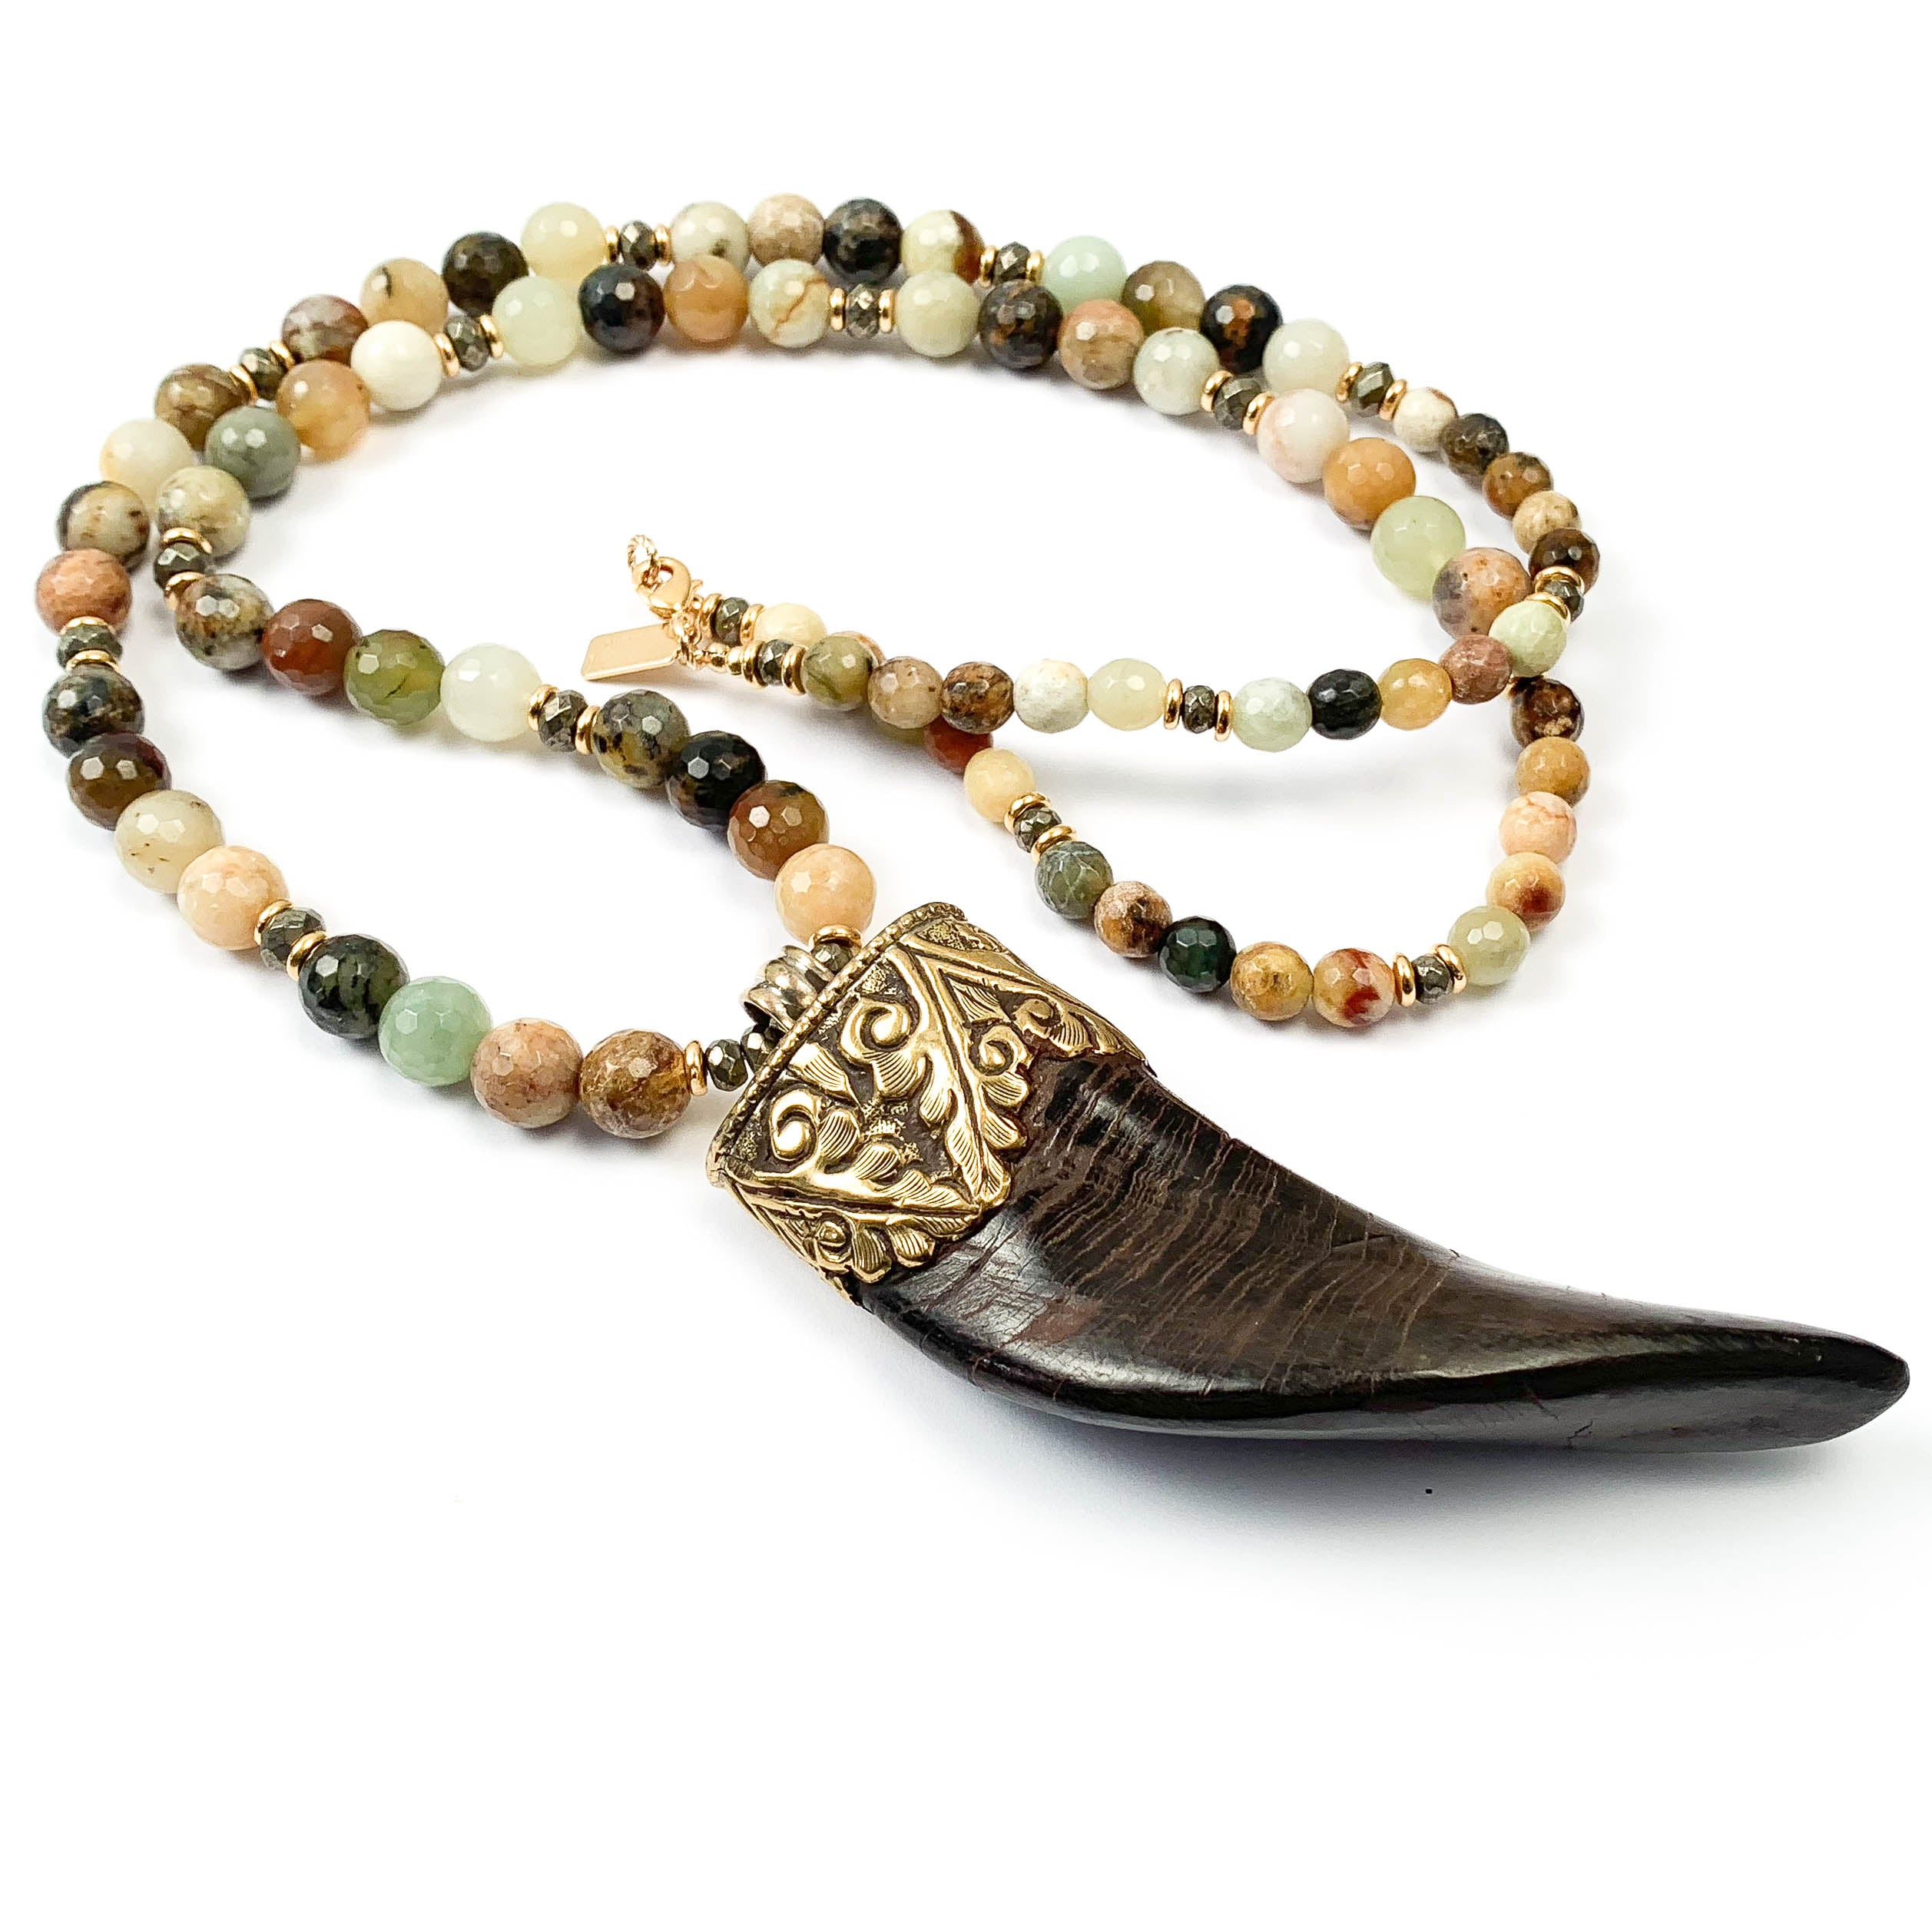 Naturally Shed Himalayan Ram's Horn Pendant & Multi-Colored Jade Necklace